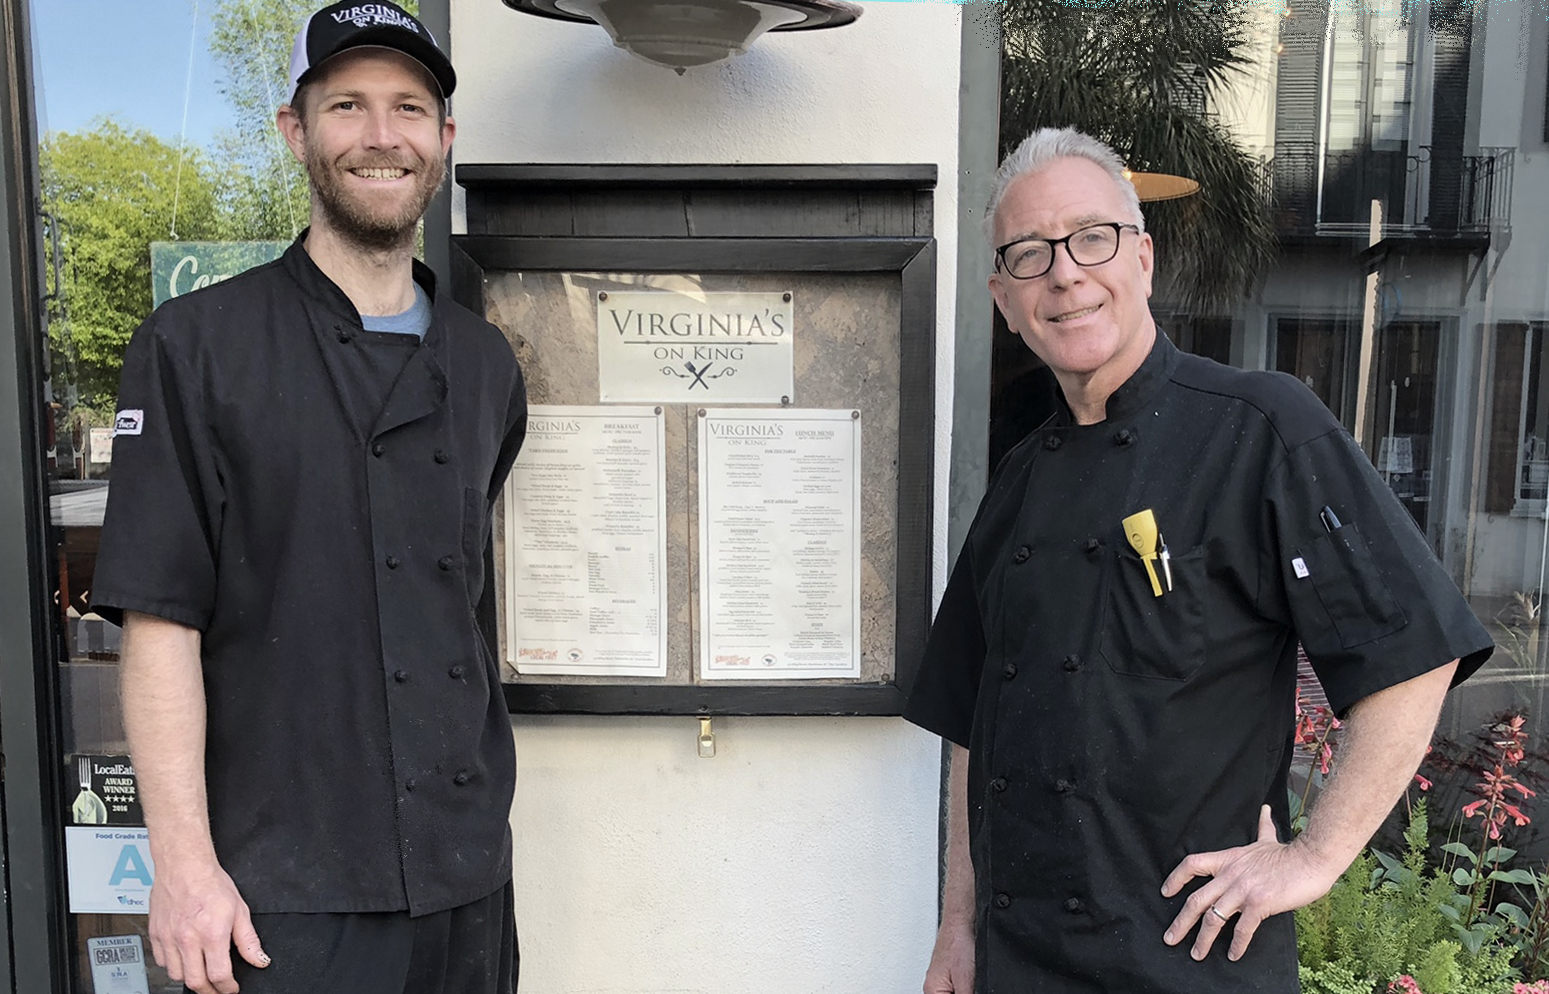 Chefs from Virginia's on King